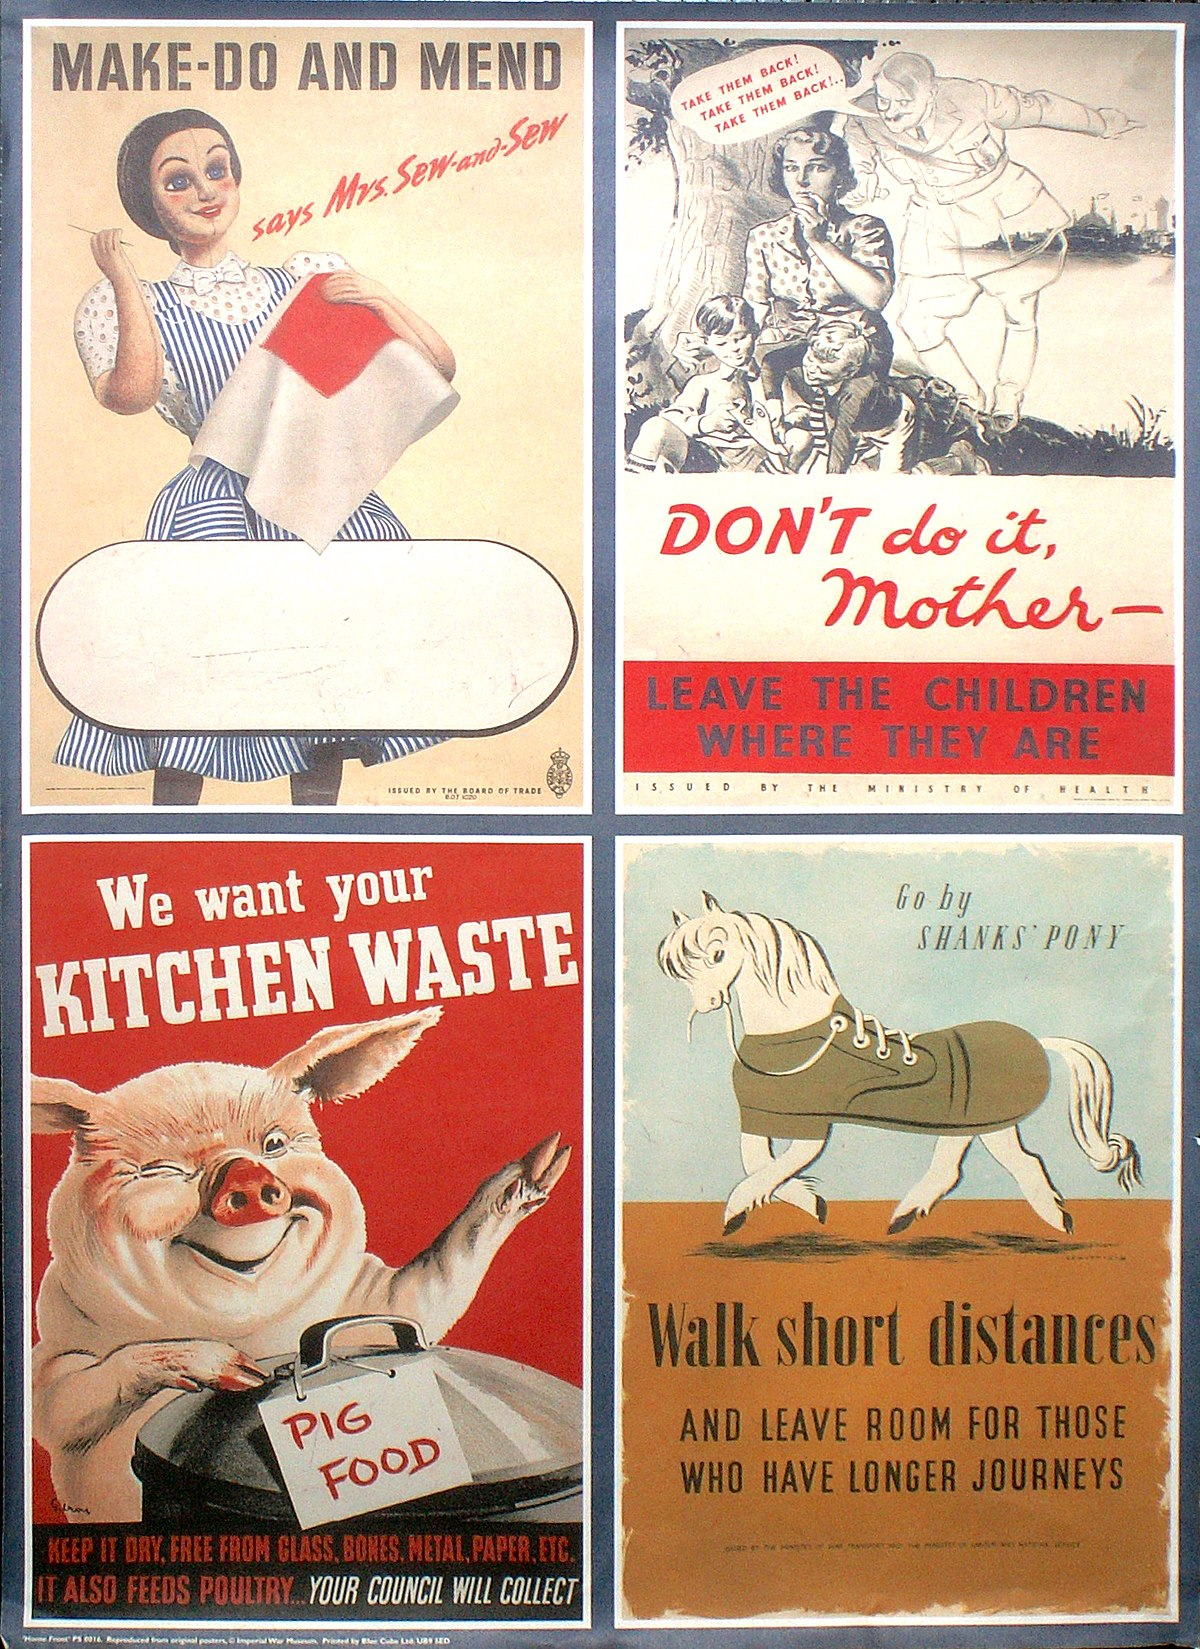 British propaganda during World War II - Wikipedia